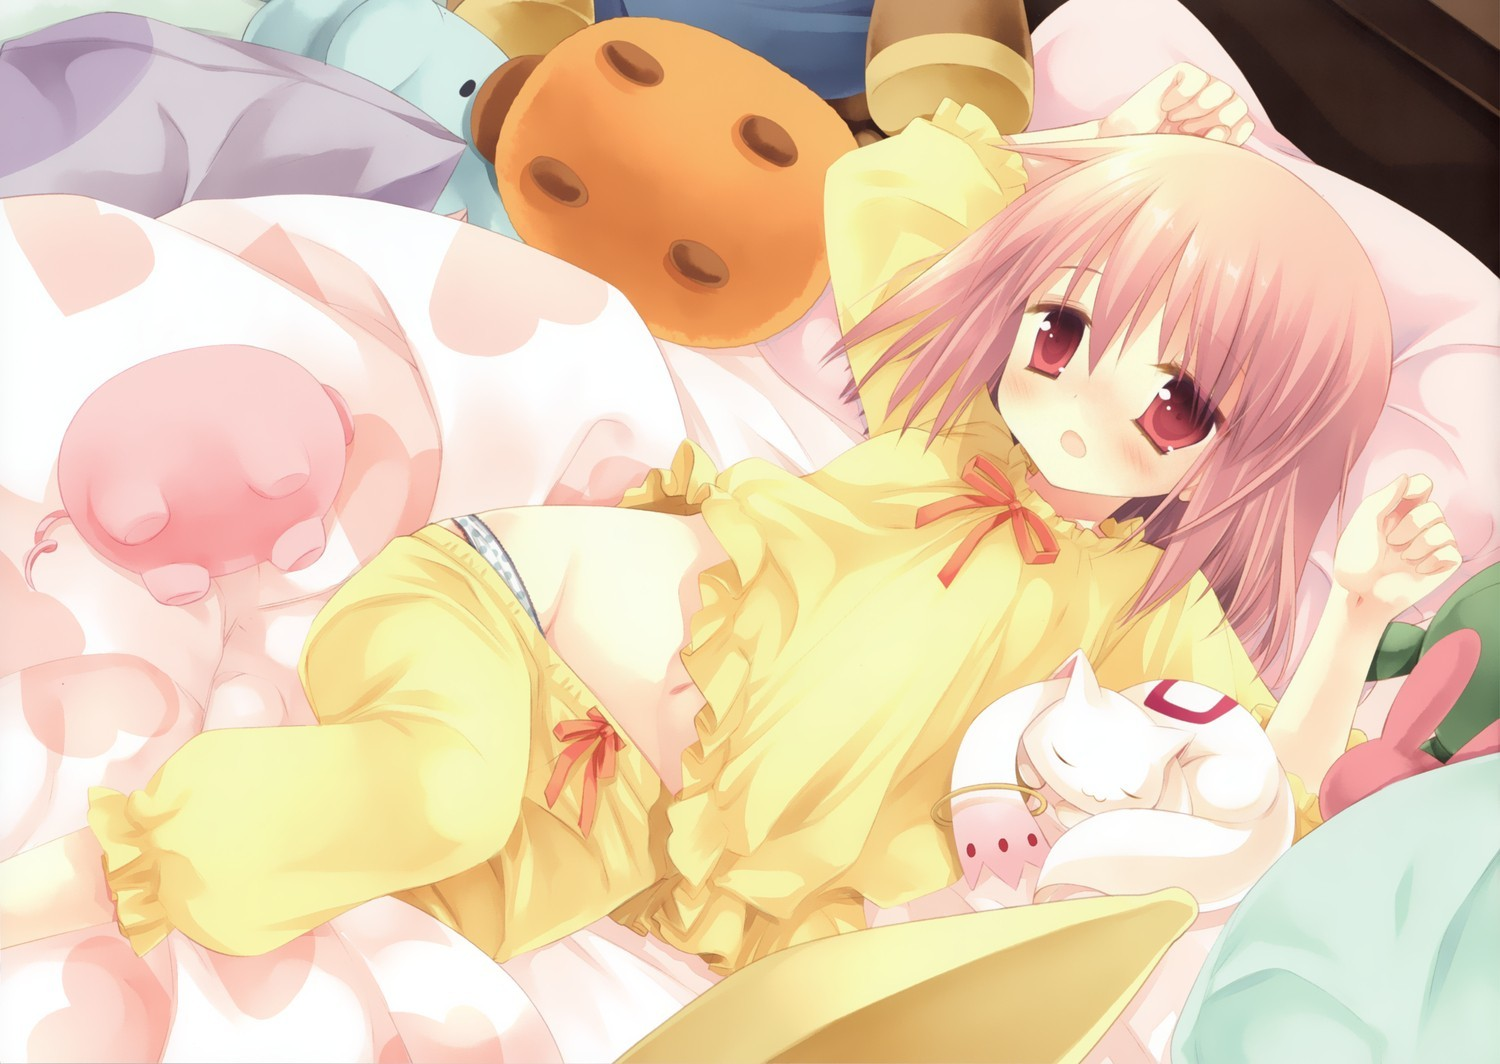 beds pink hair lolicon HD Wallpaper